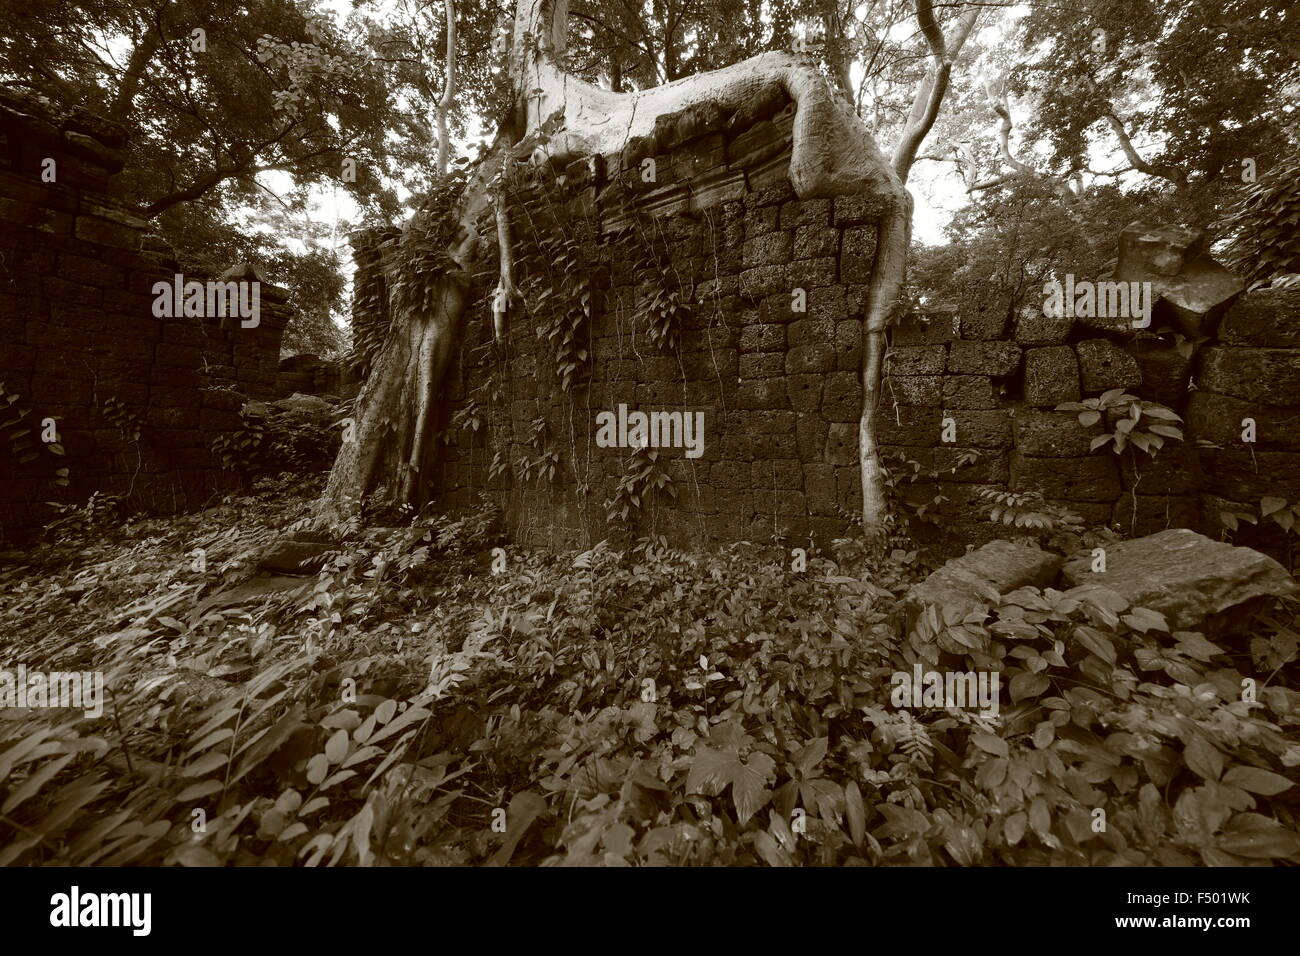 Ultra wide angle of a tree root framing a ruin wall in Banteay Cchmar, Cambodia - Stock Image